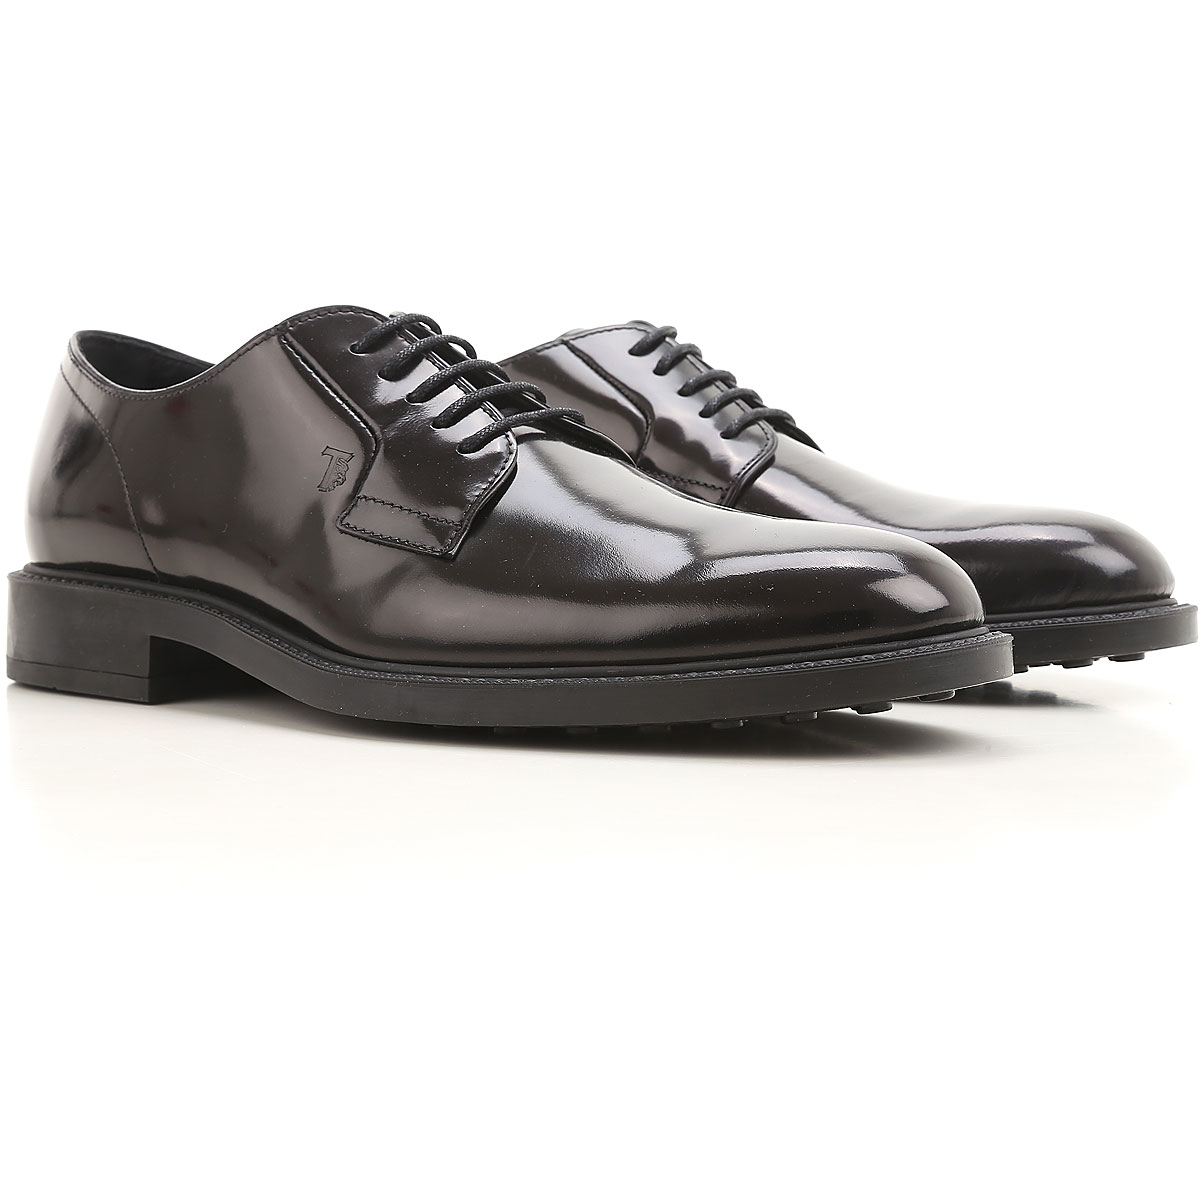 Tods Mens Shoes Polished Black Canada - GOOFASH -